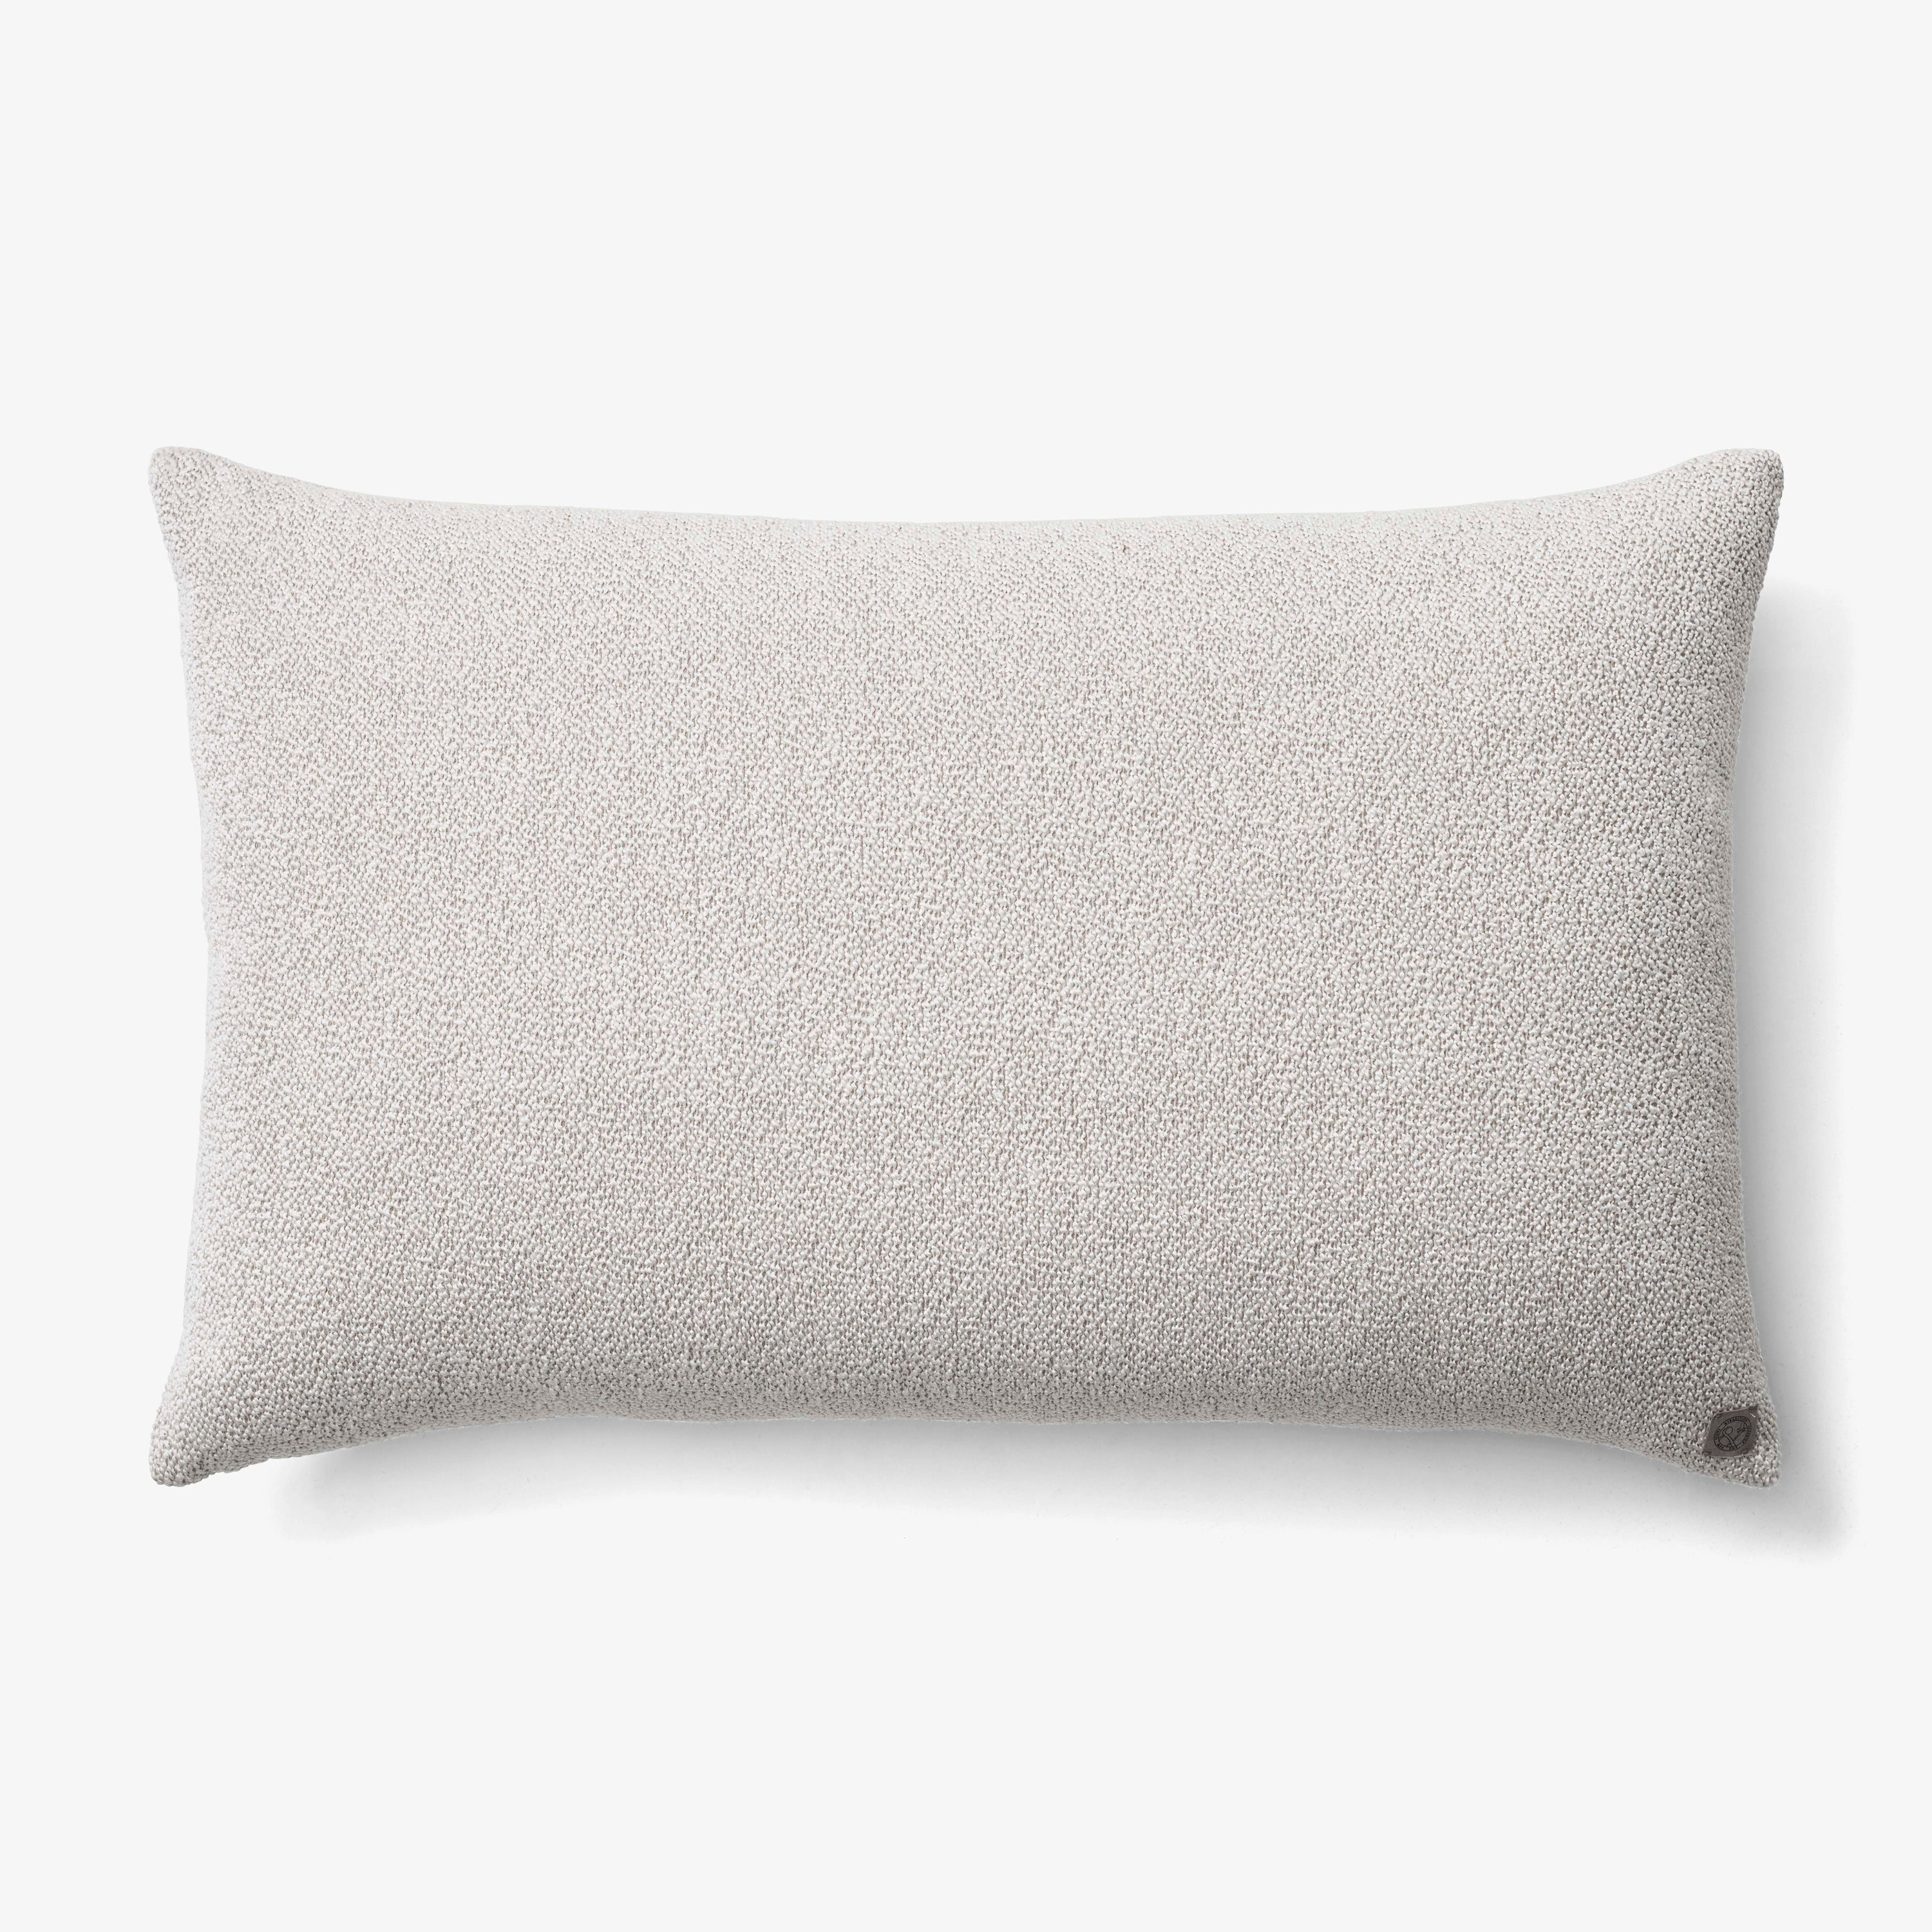 Collect Cushion SC30 - 50x80, Ivory&Sand/Boucle fra &tradition